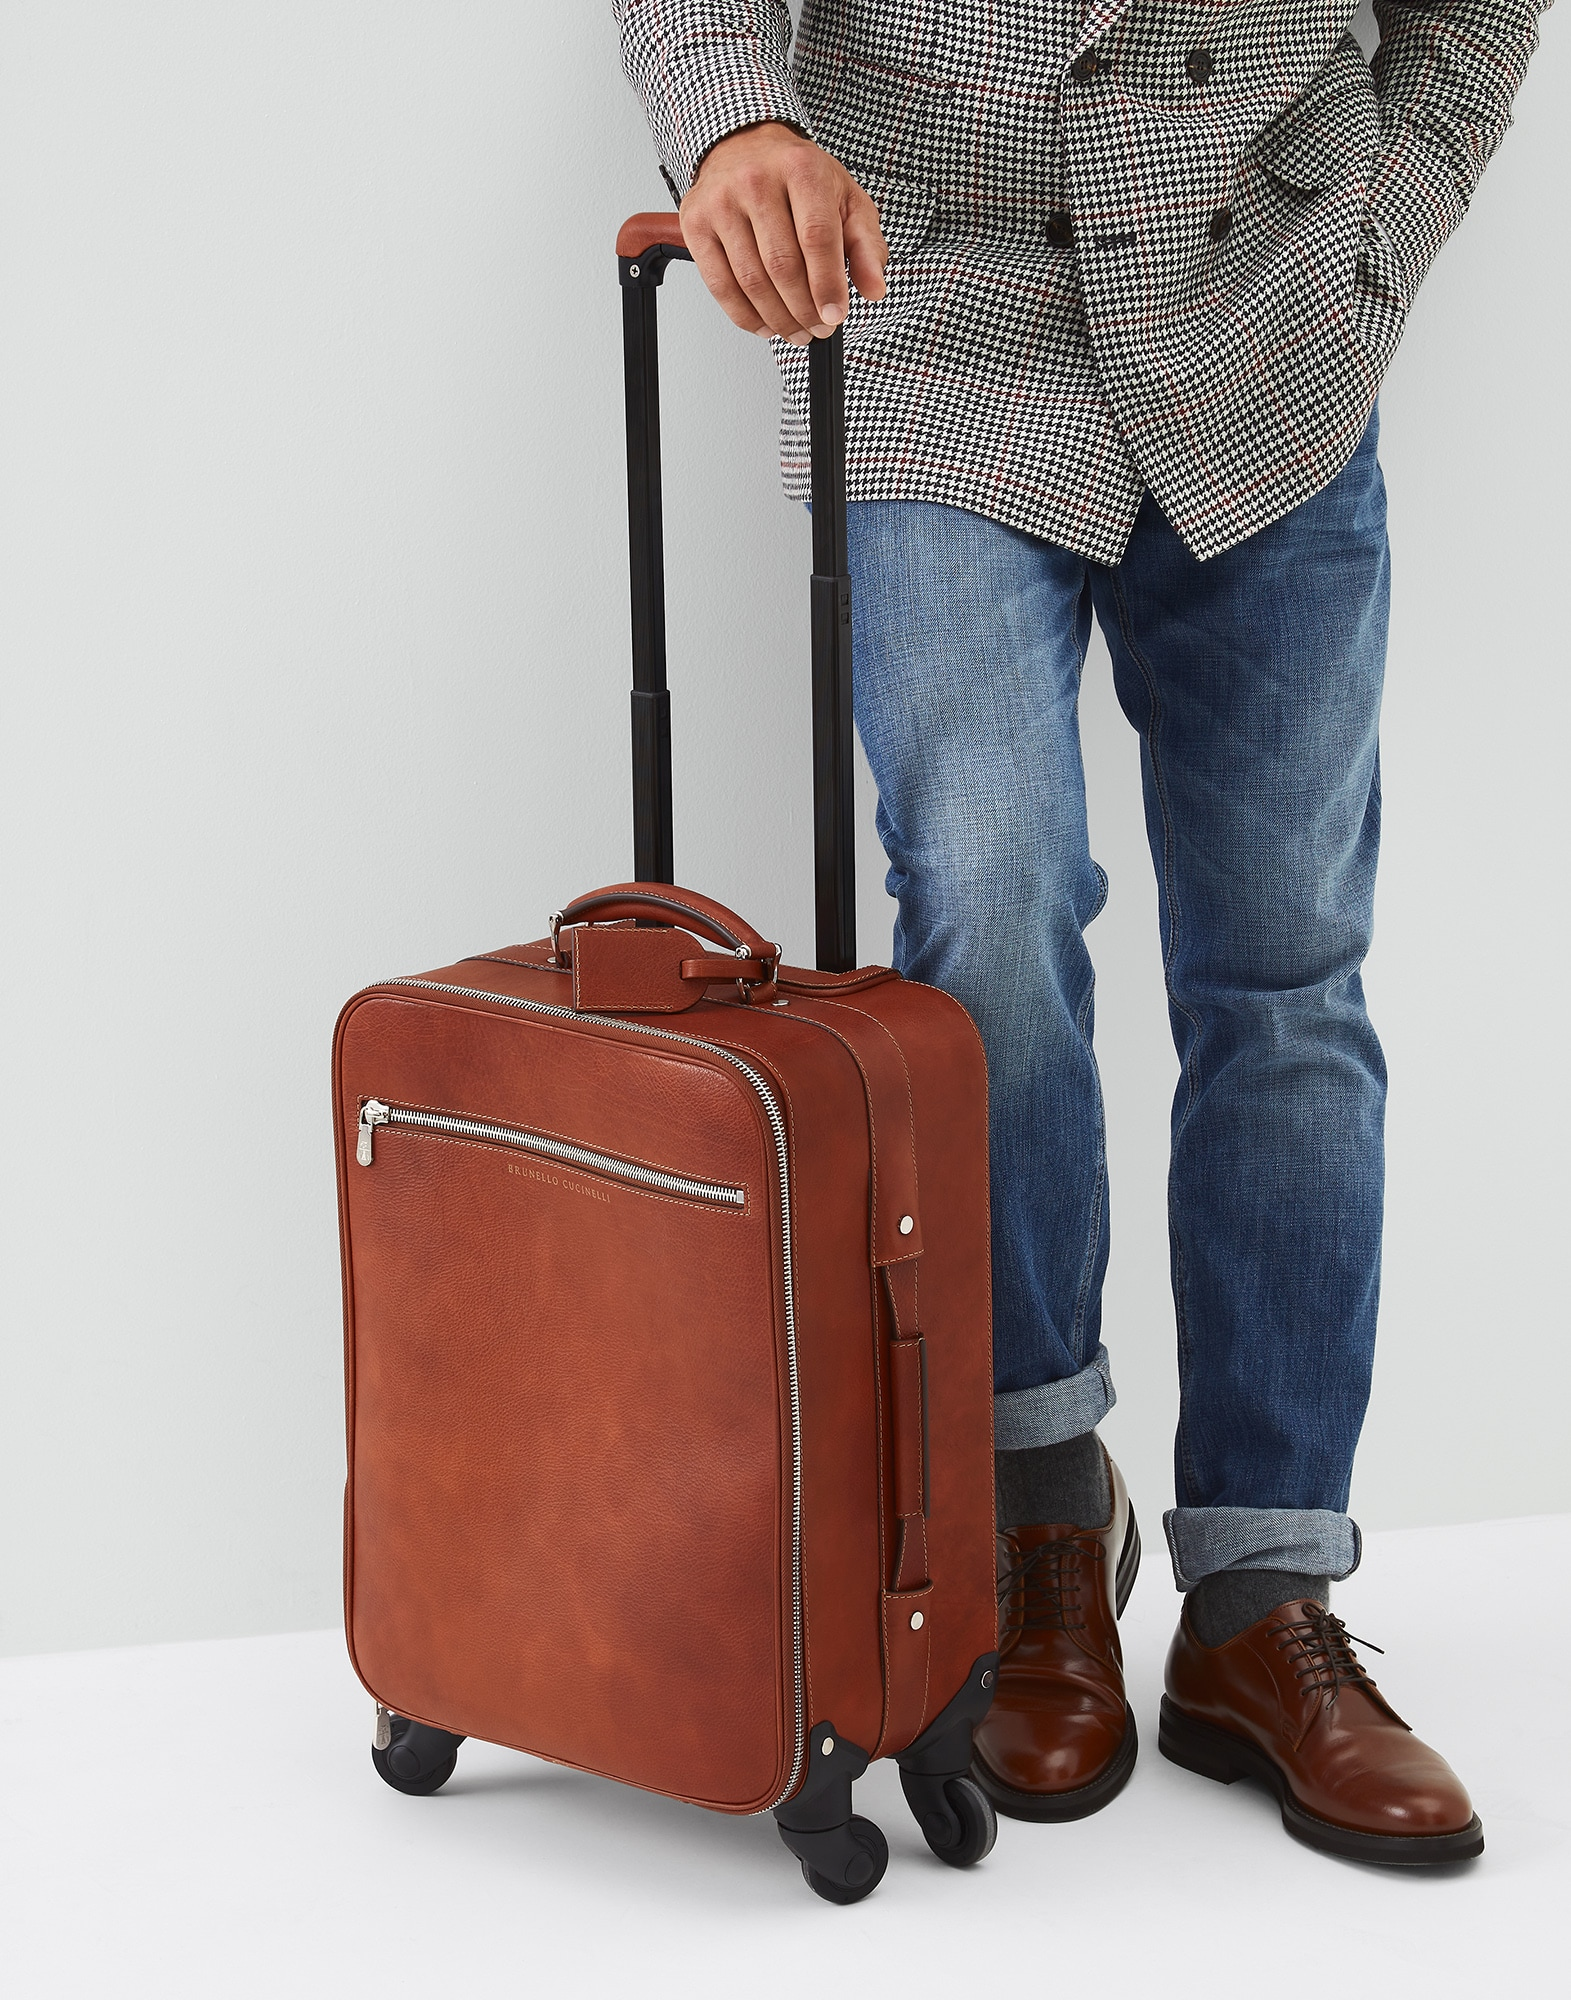 Wheeled Luggage Rum Man 0 - Brunello Cucinelli